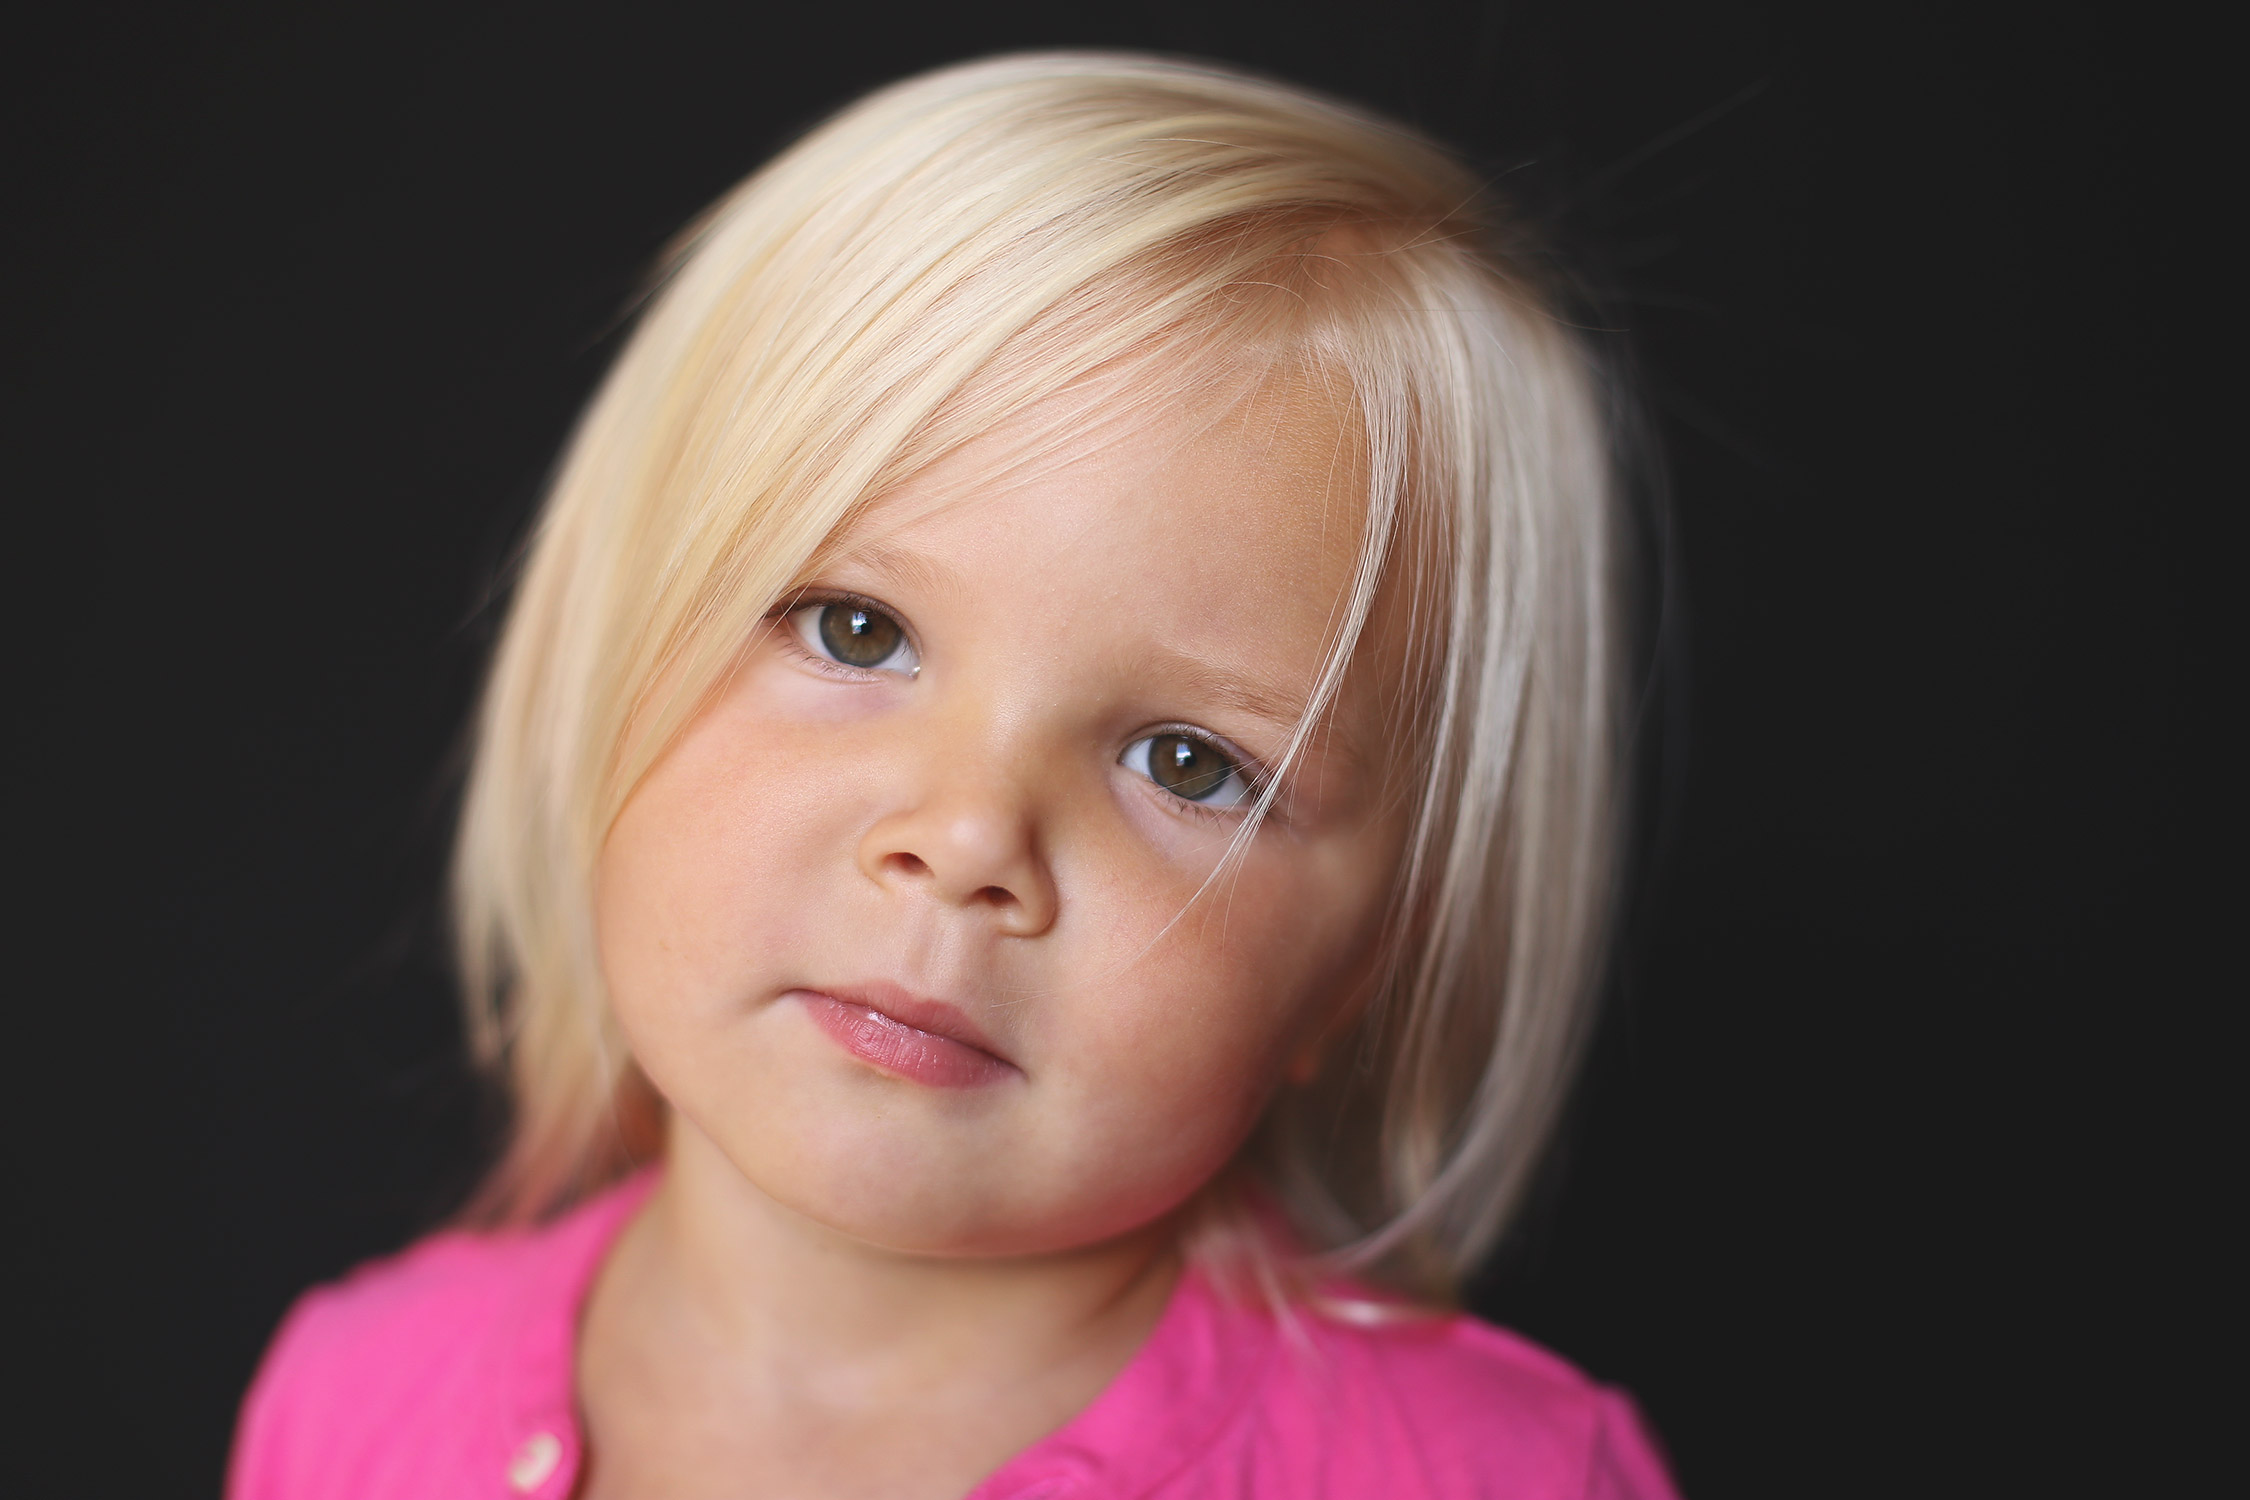 Blonde haired toddler girl looking at camera   St. Louis School Photos